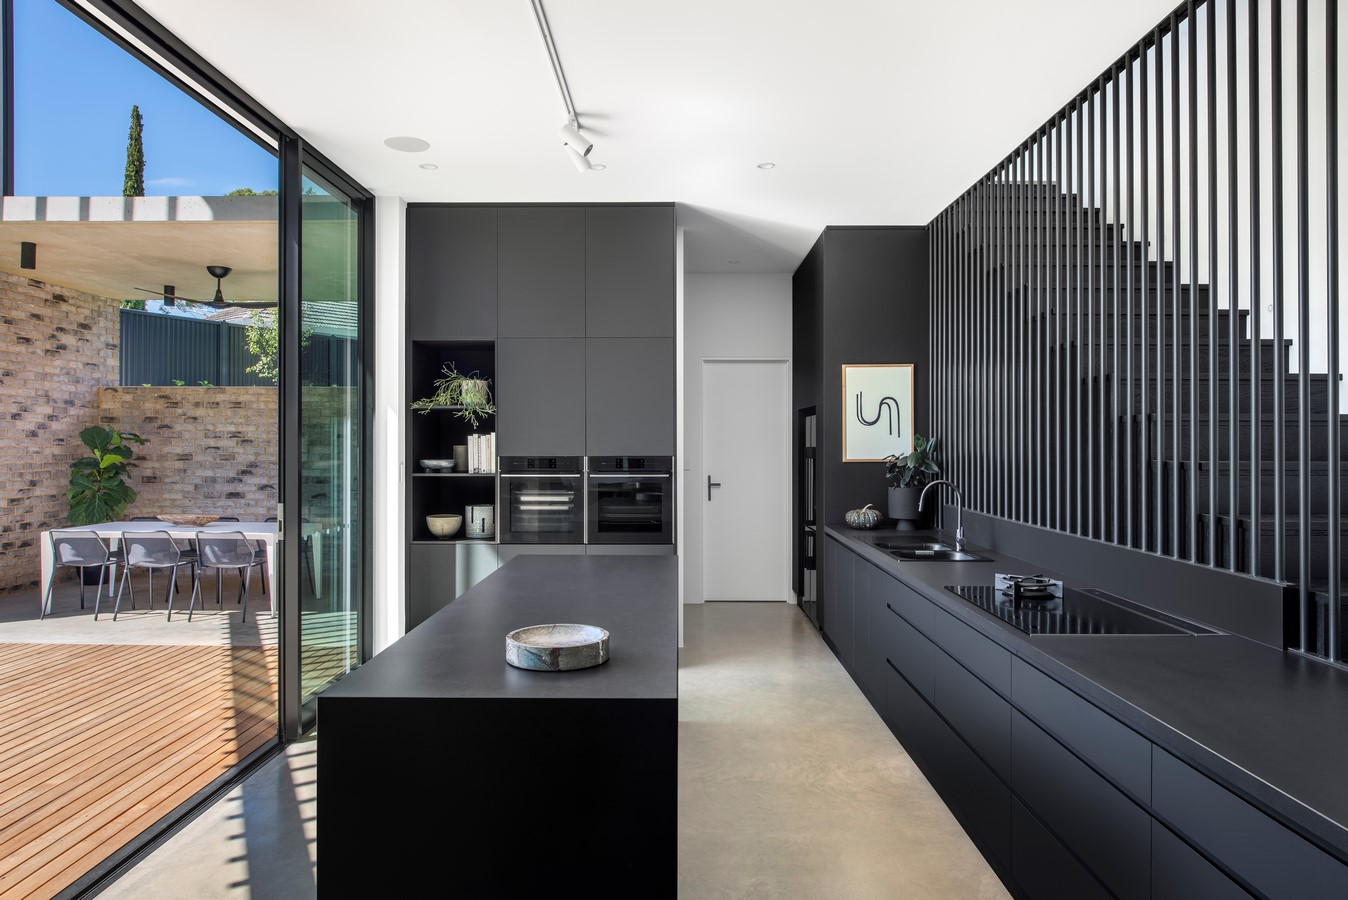 5069 Rentoul - A House On Two Stones by RAD Studio: Sheet 1